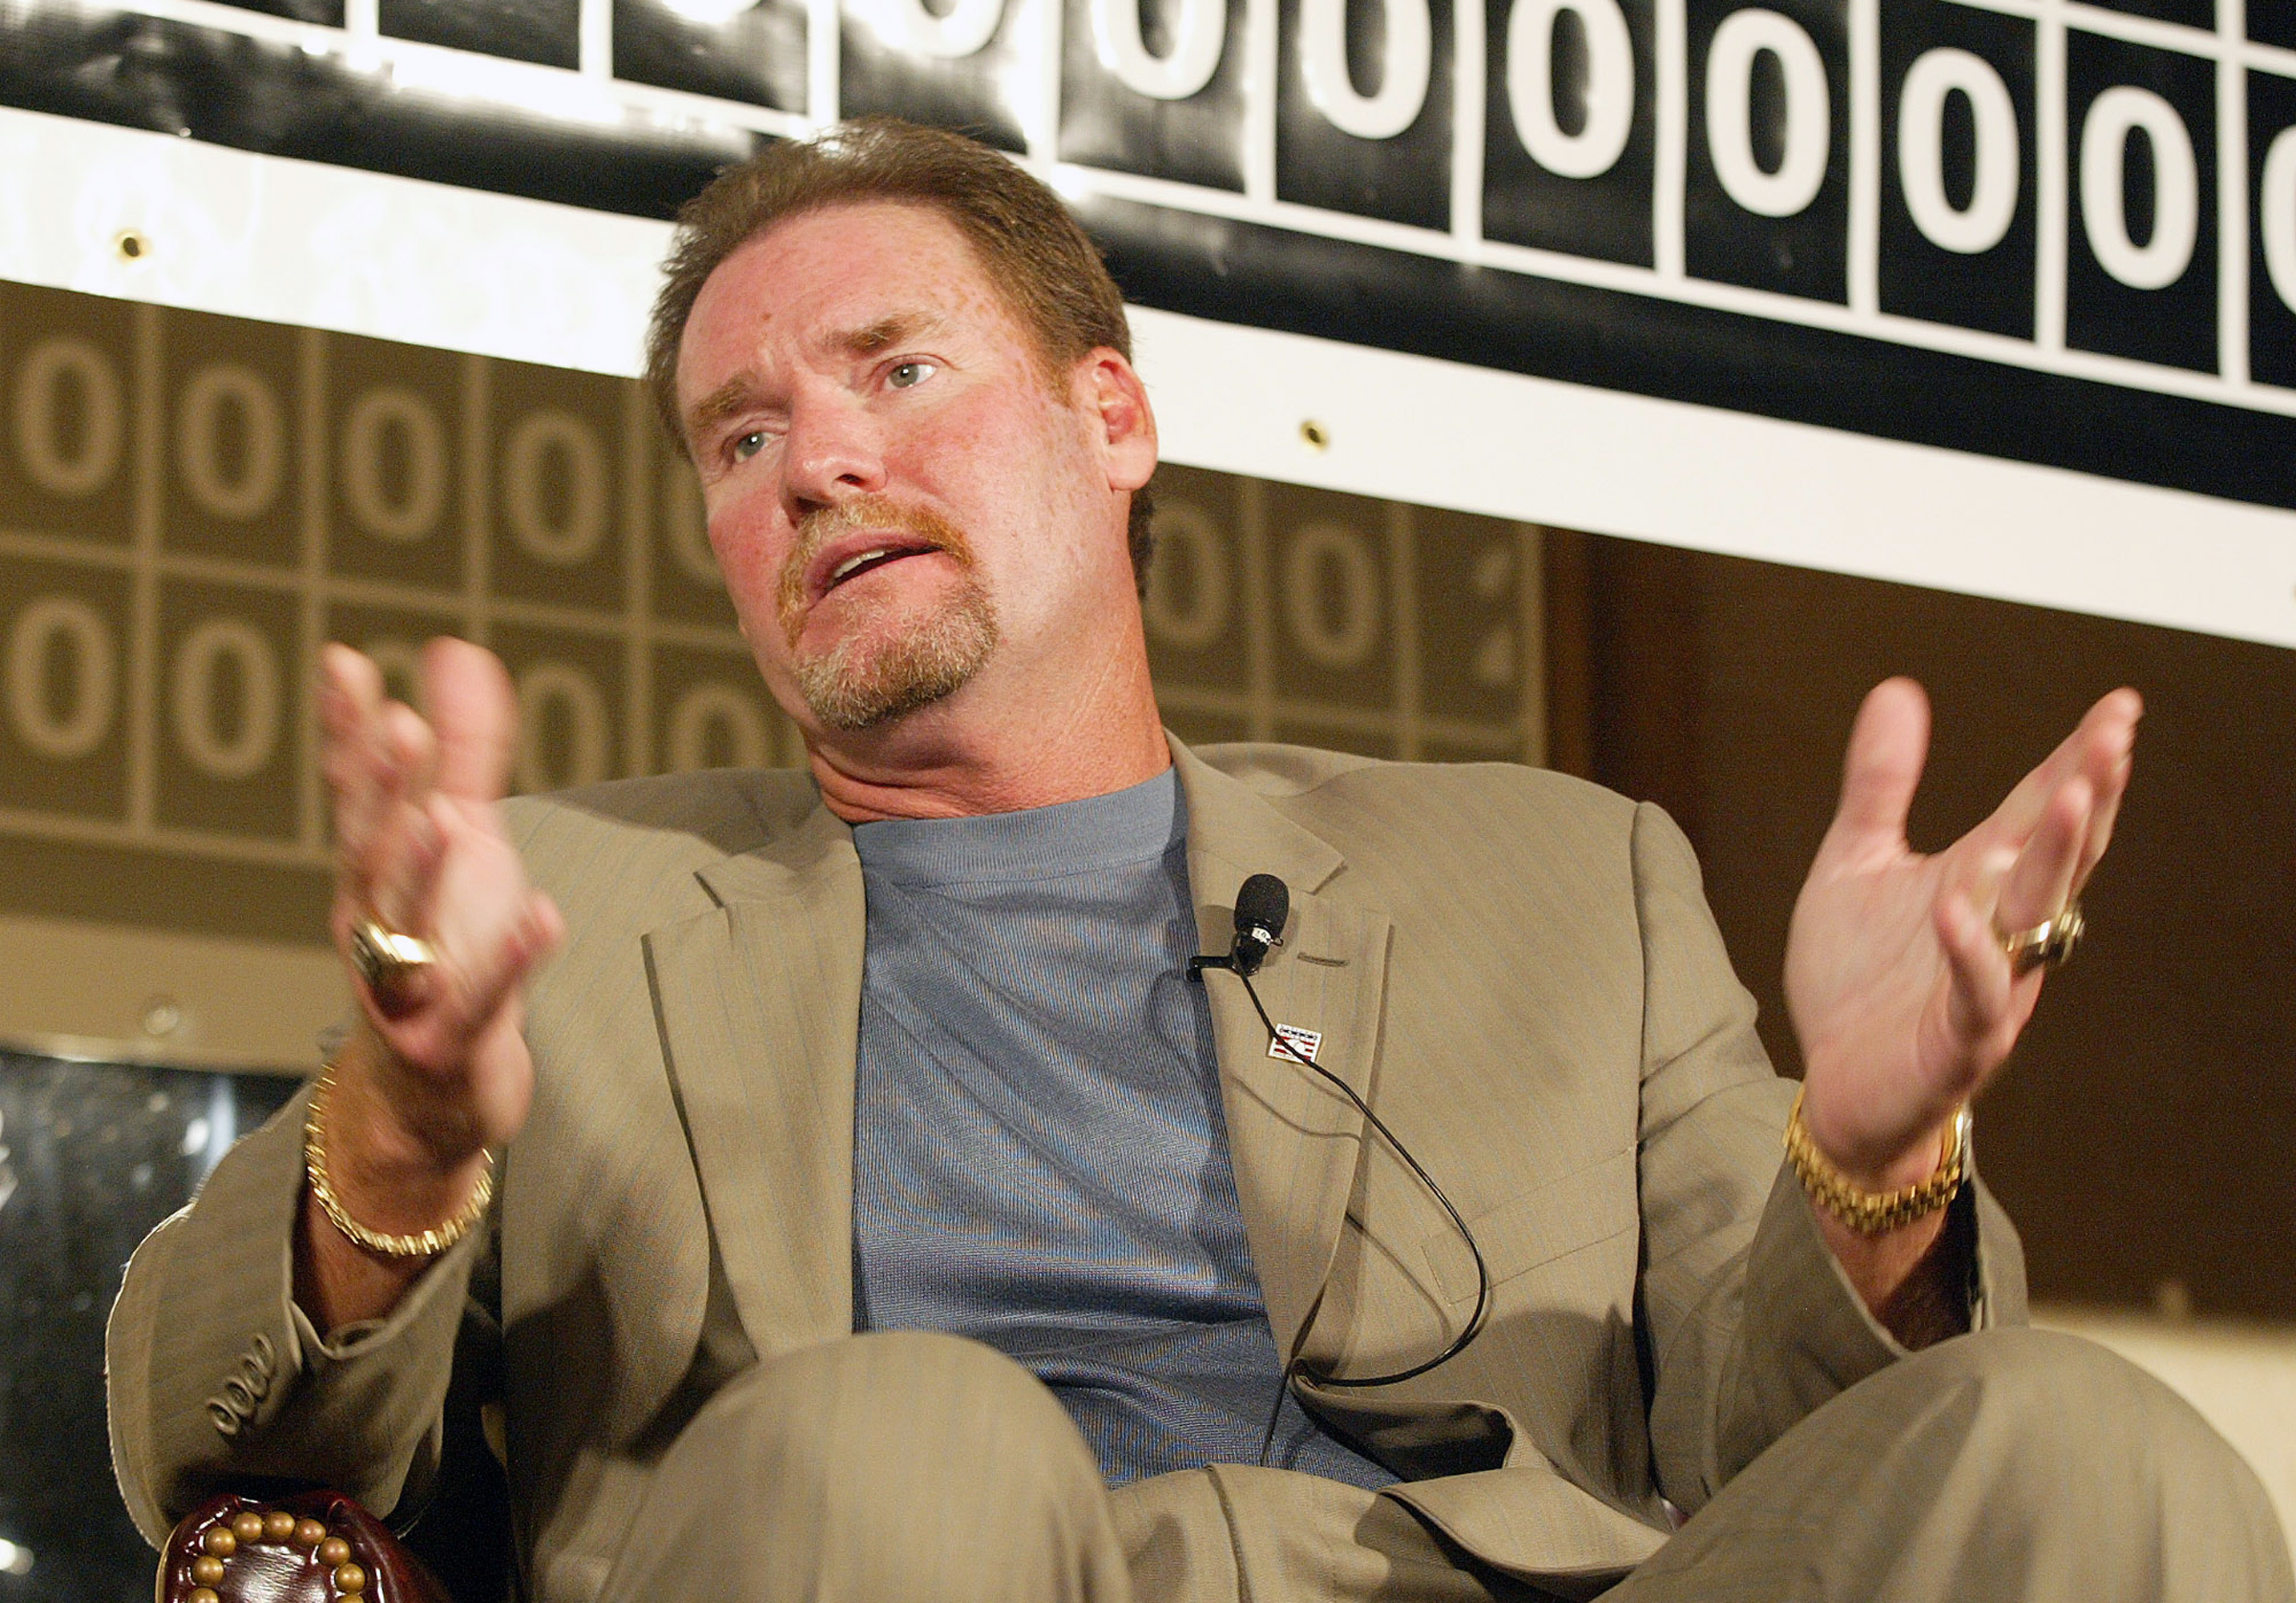 FILE - In this June 23, 2006, file photo, former Boston Red Sox player Wade Boggs talks in Providence, R.I. Boggs' No. 26 will be retired by the Red Sox. Boston said Monday, Dec. 21, 2015, it will retire the number of the Hall of Fame third baseman during